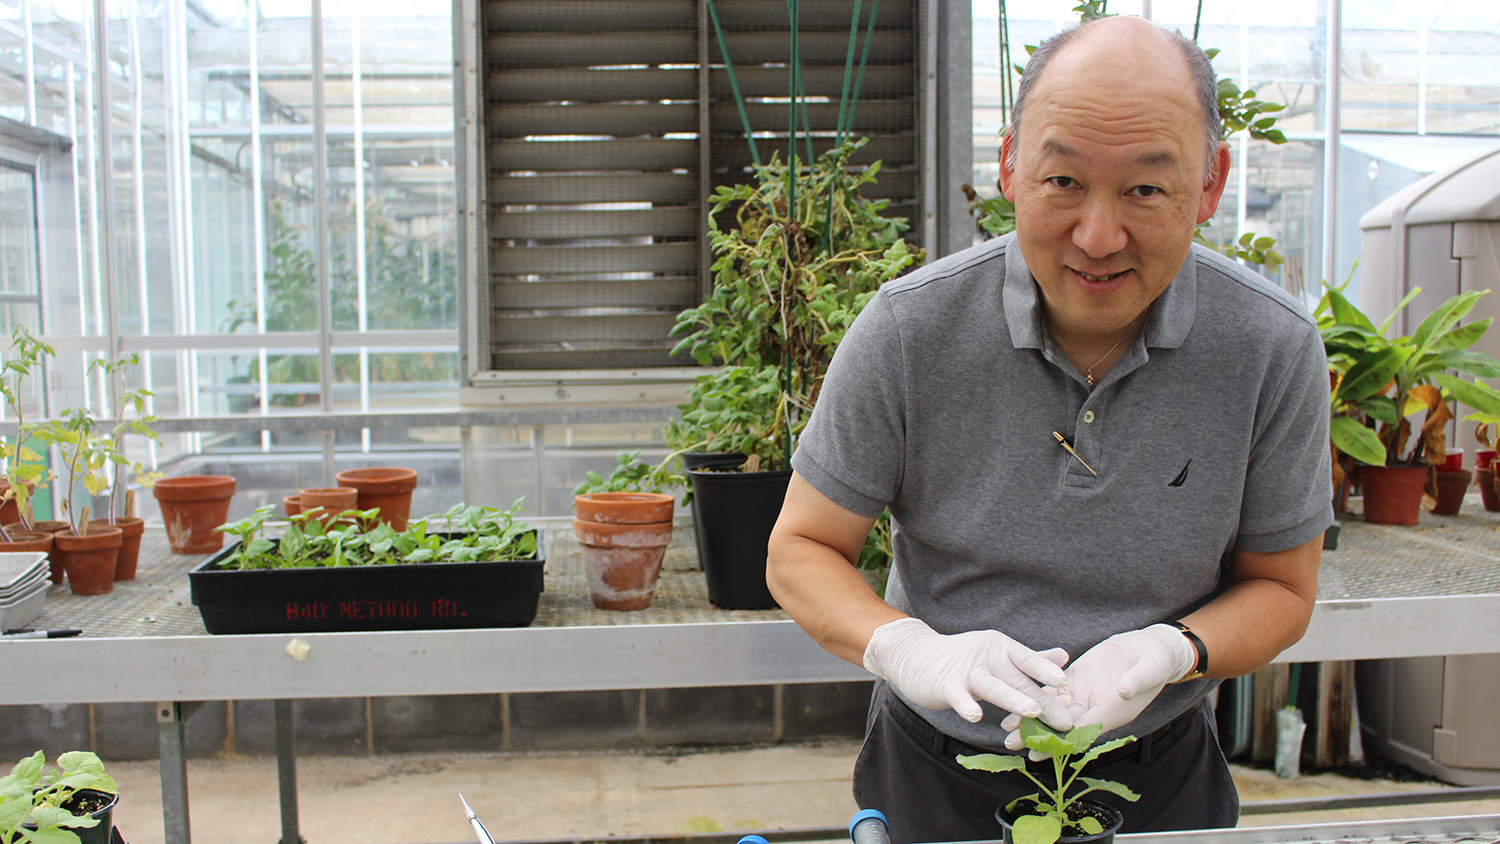 Man wearing rubber gloves touches a plant in a greenhouse.